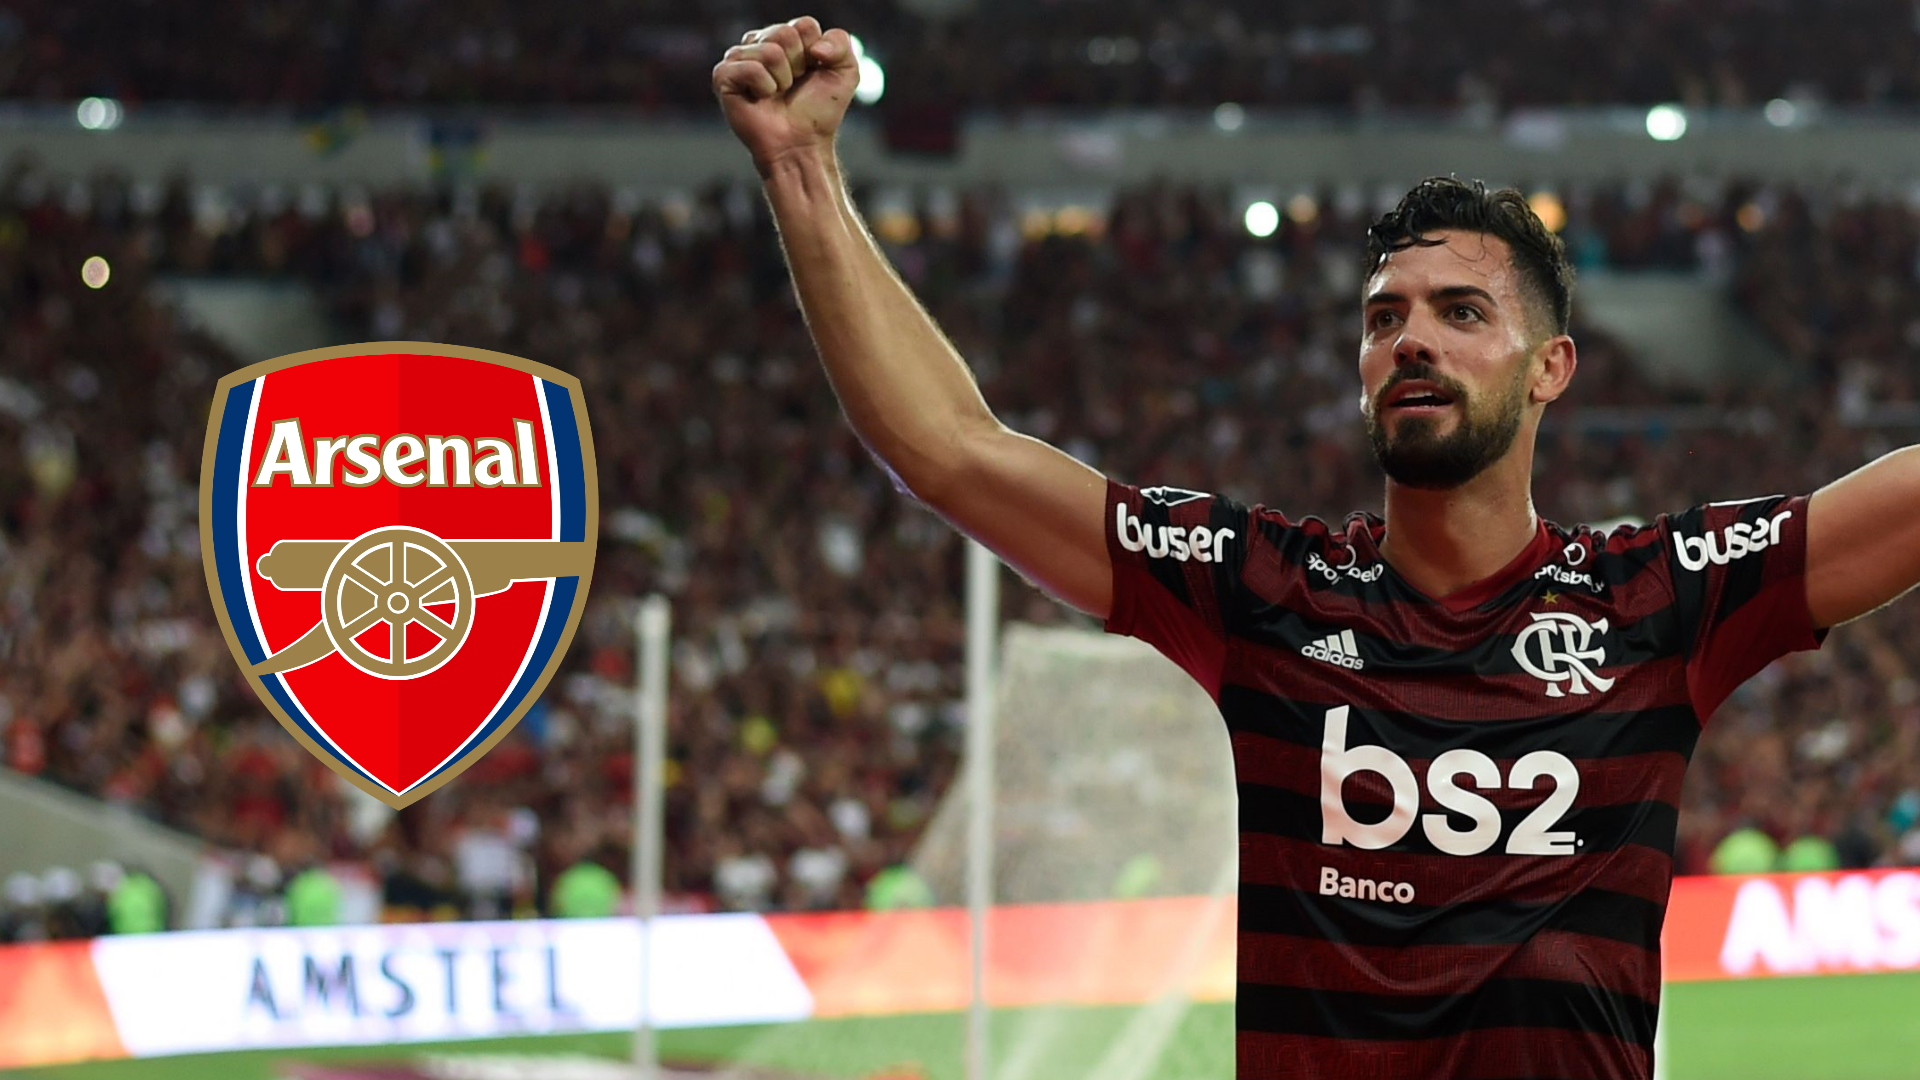 Arsenal sign Pablo Mari on loan from Flamengo until end of the season